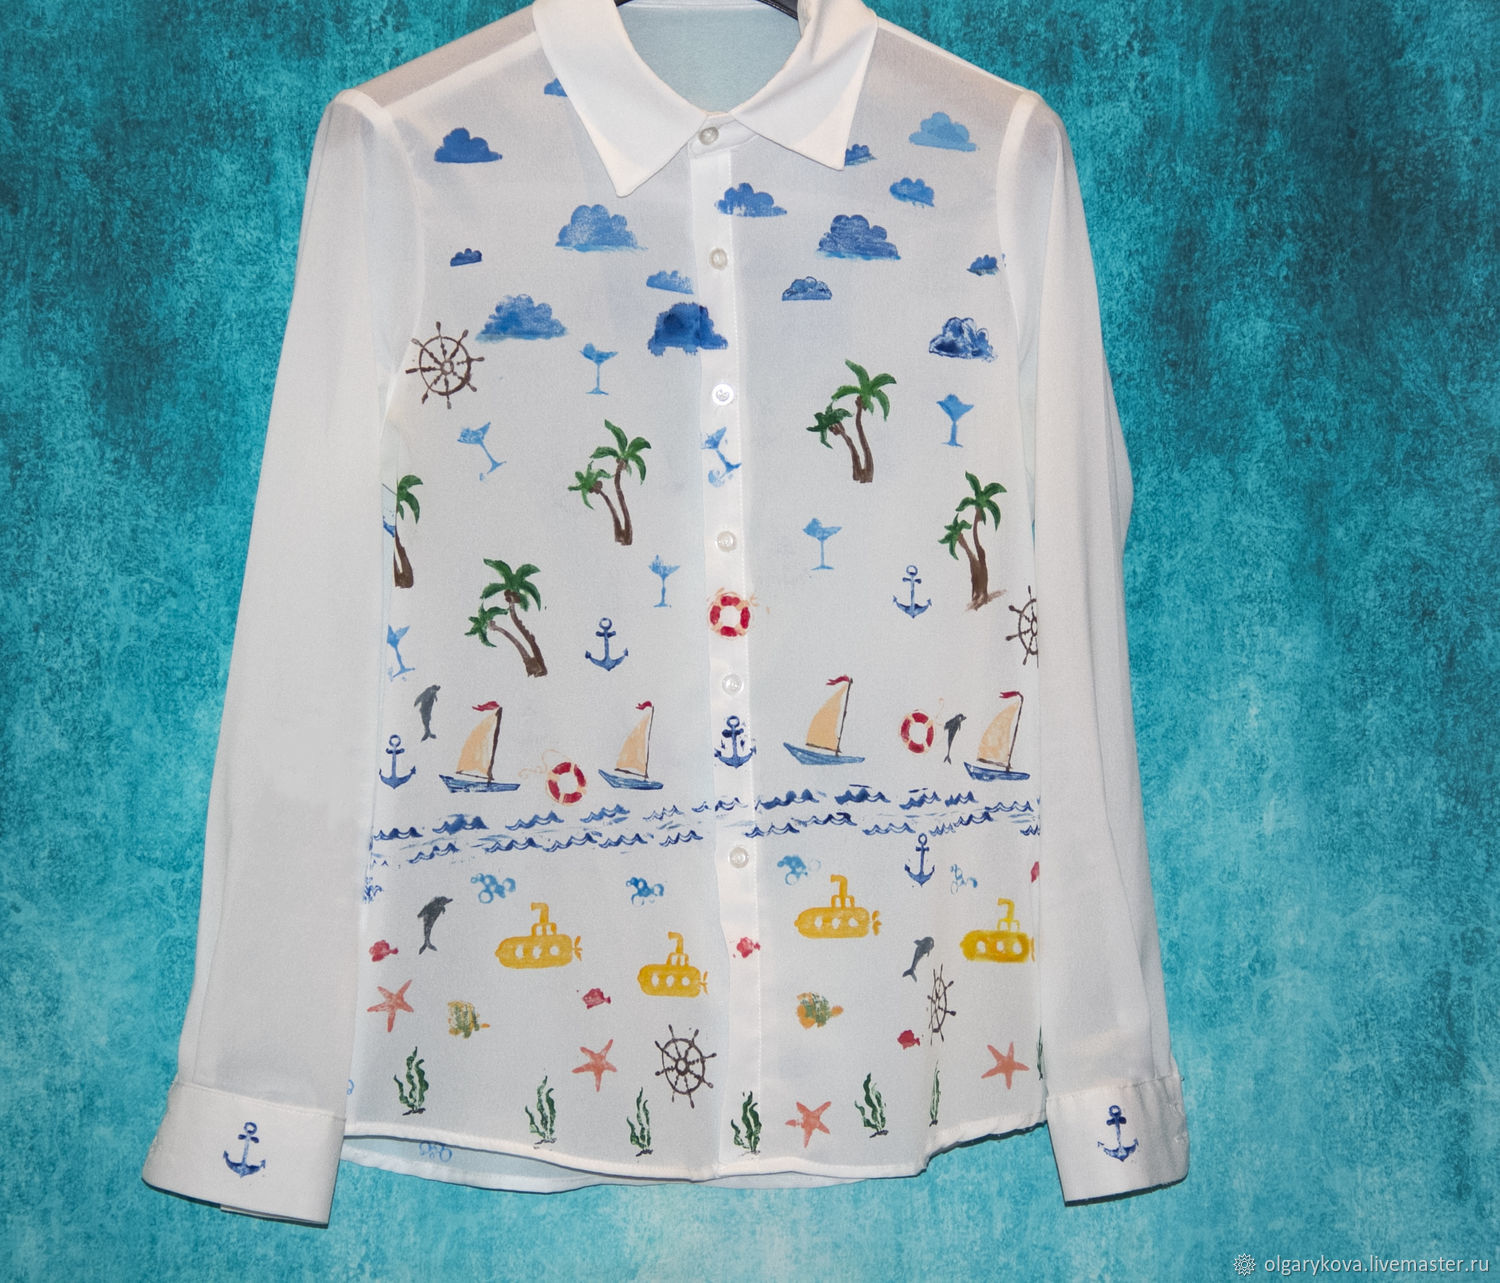 Blouse sea palm trees sky hand painted, Blouses, St. Petersburg,  Фото №1